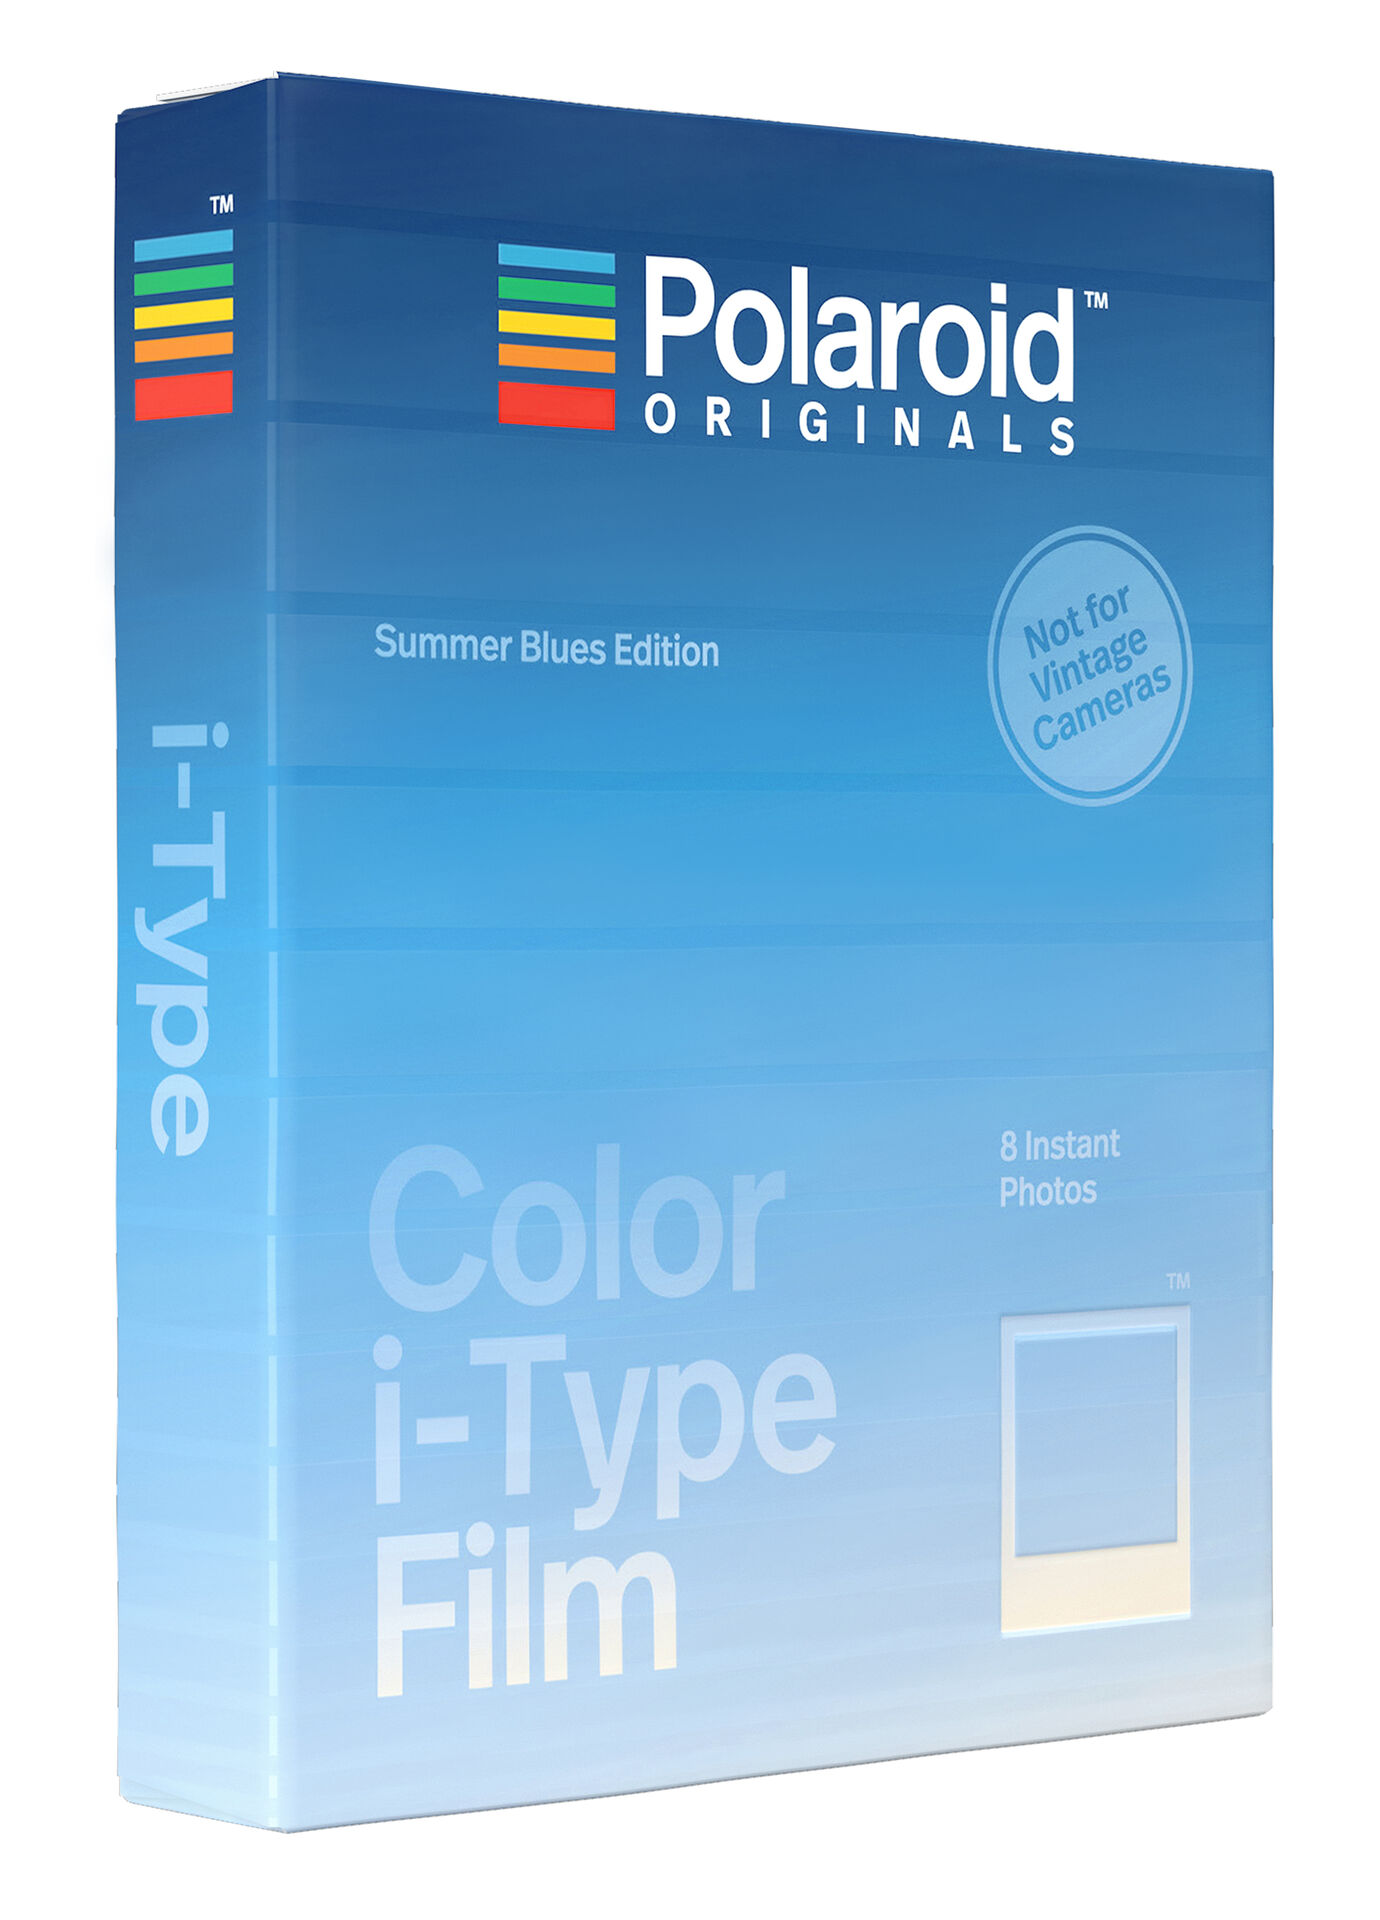 Polaroid Originals Film Color I-Type Summer Blues